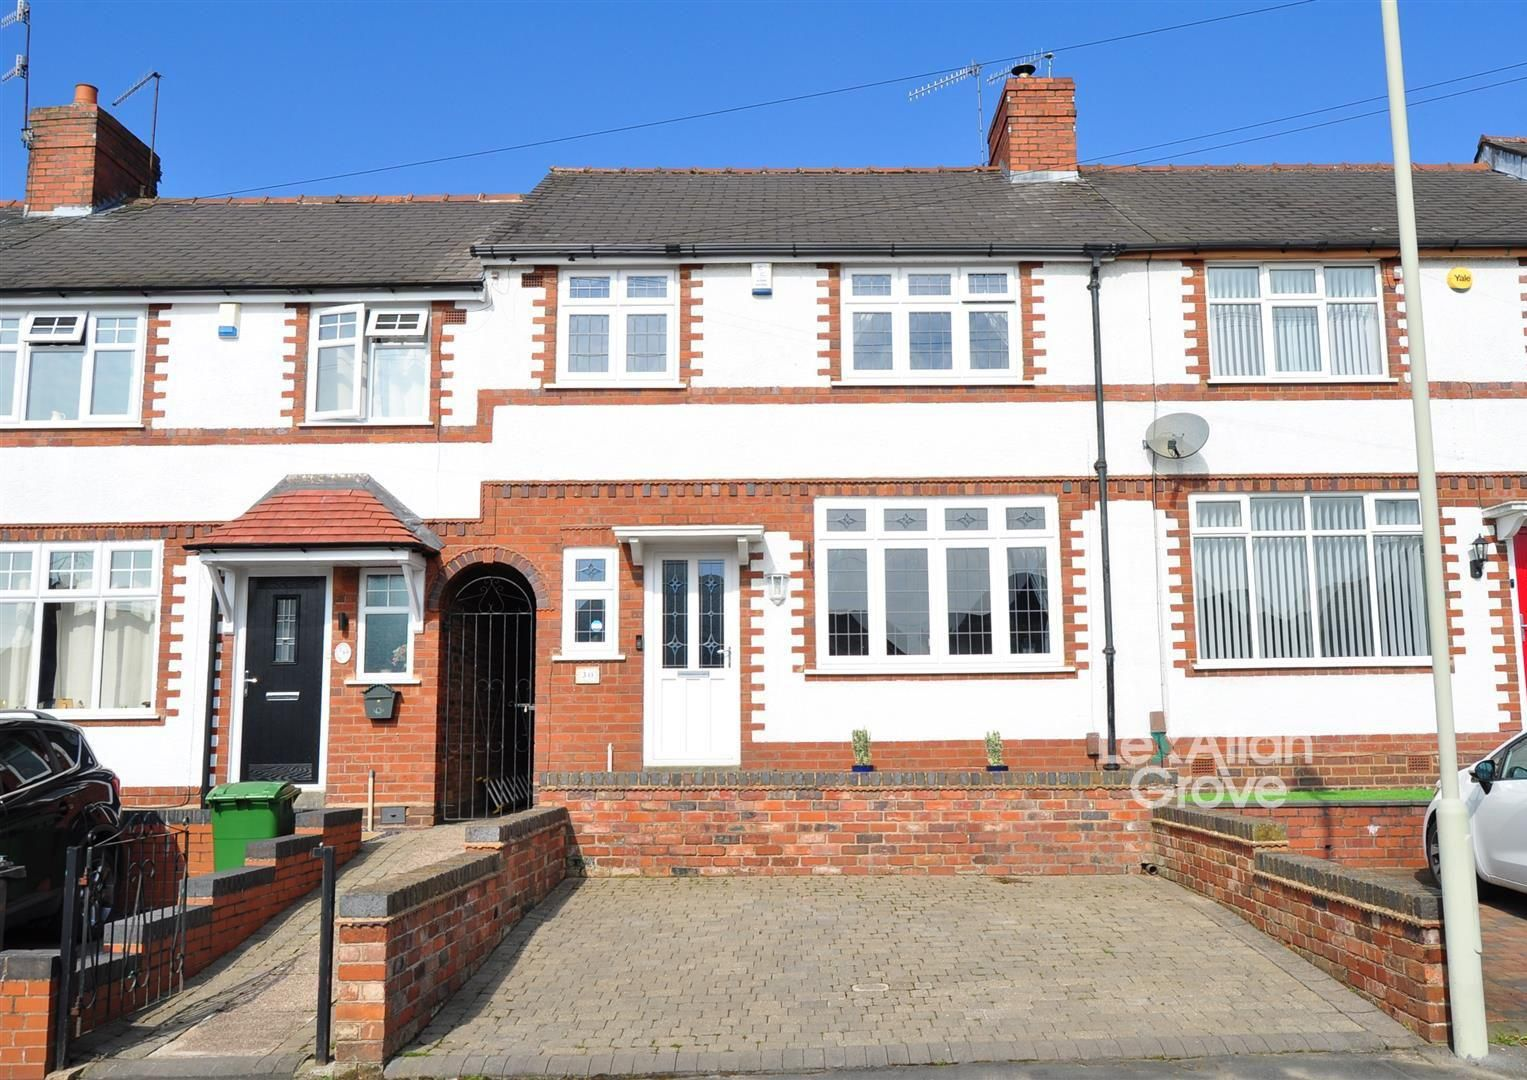 3 bed terraced for sale, DY2